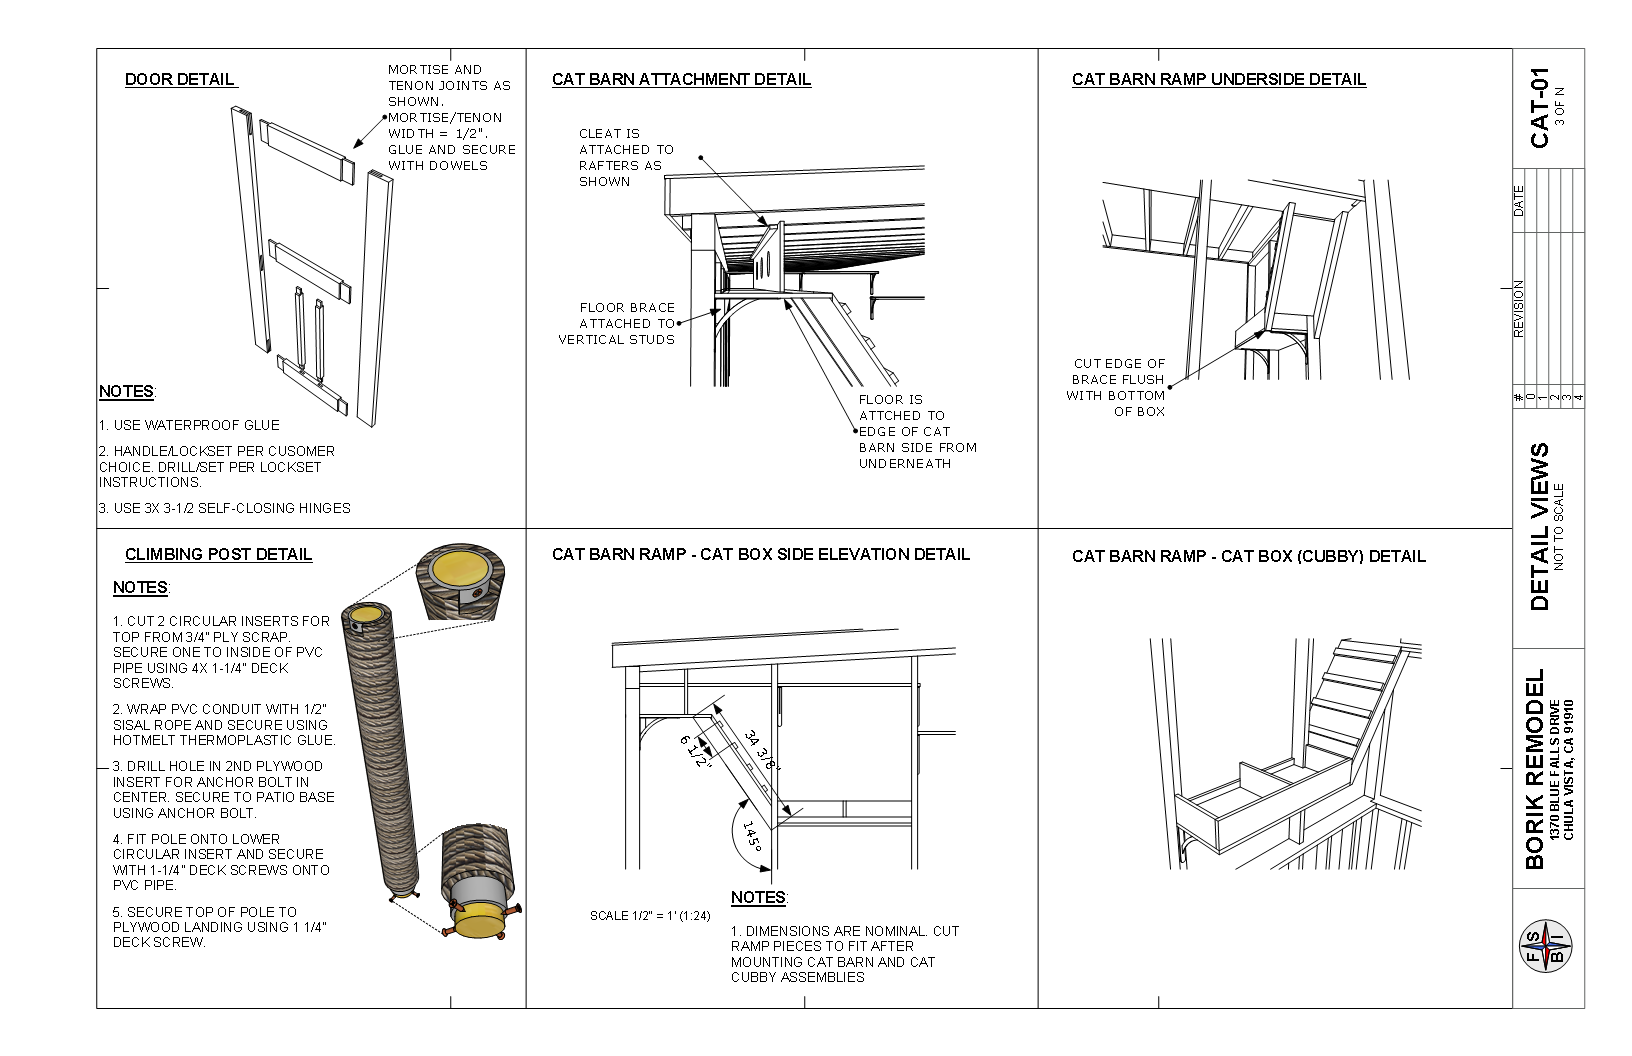 Building A Catio Learning To Love Cats And Keeping Them